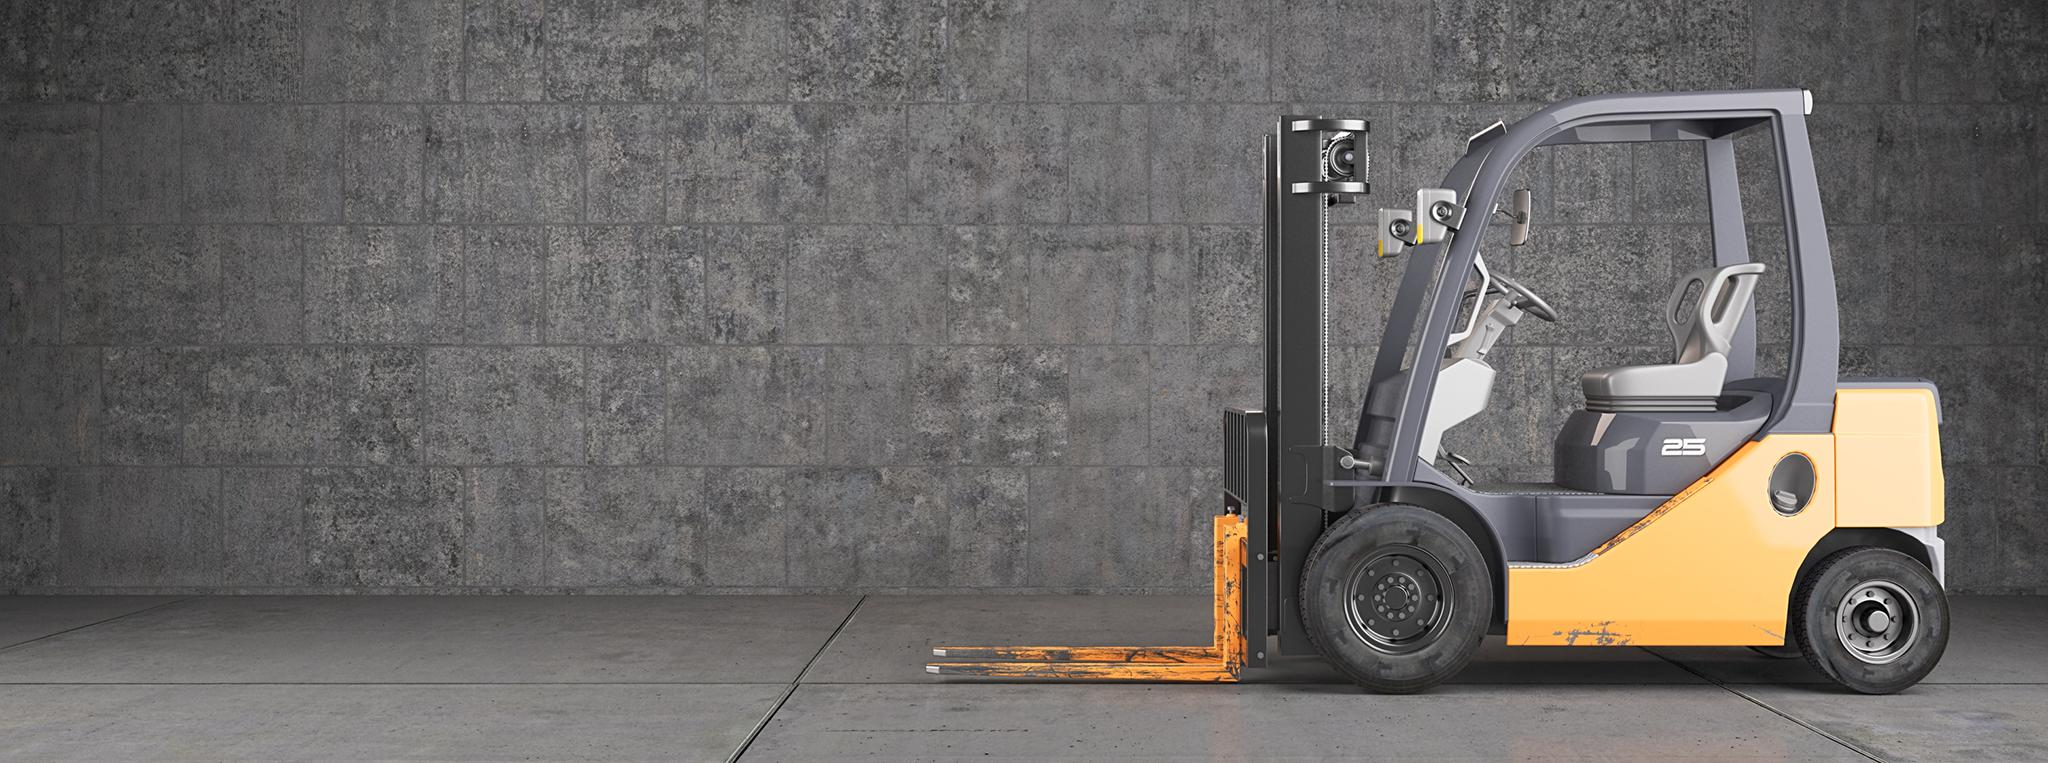 Forklift truck standing on industrial concrete wall background